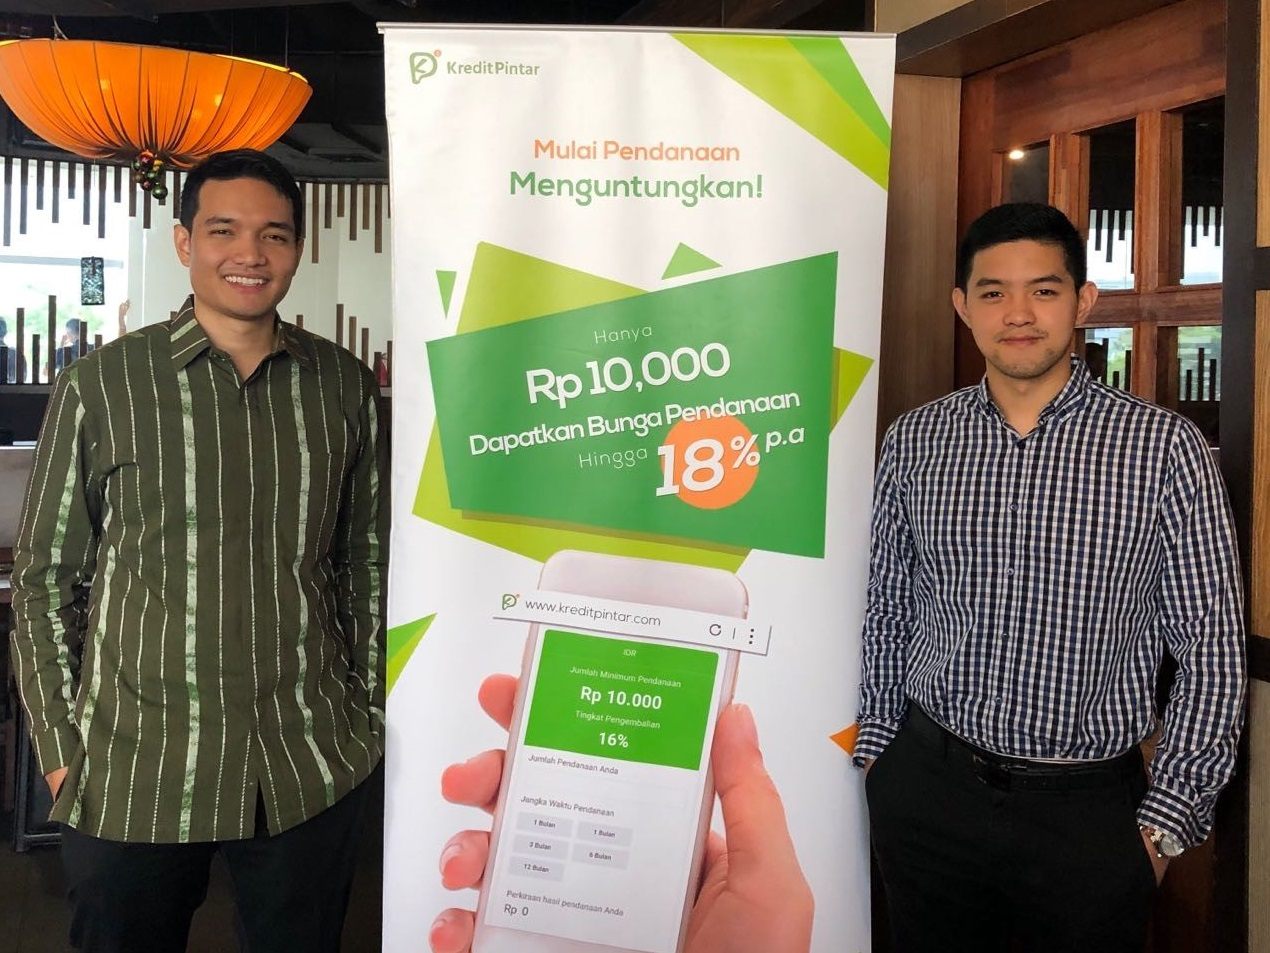 Kredit Pintar VP Boan Sianipar (left) with CEO and co-founder Wisely Wijaya